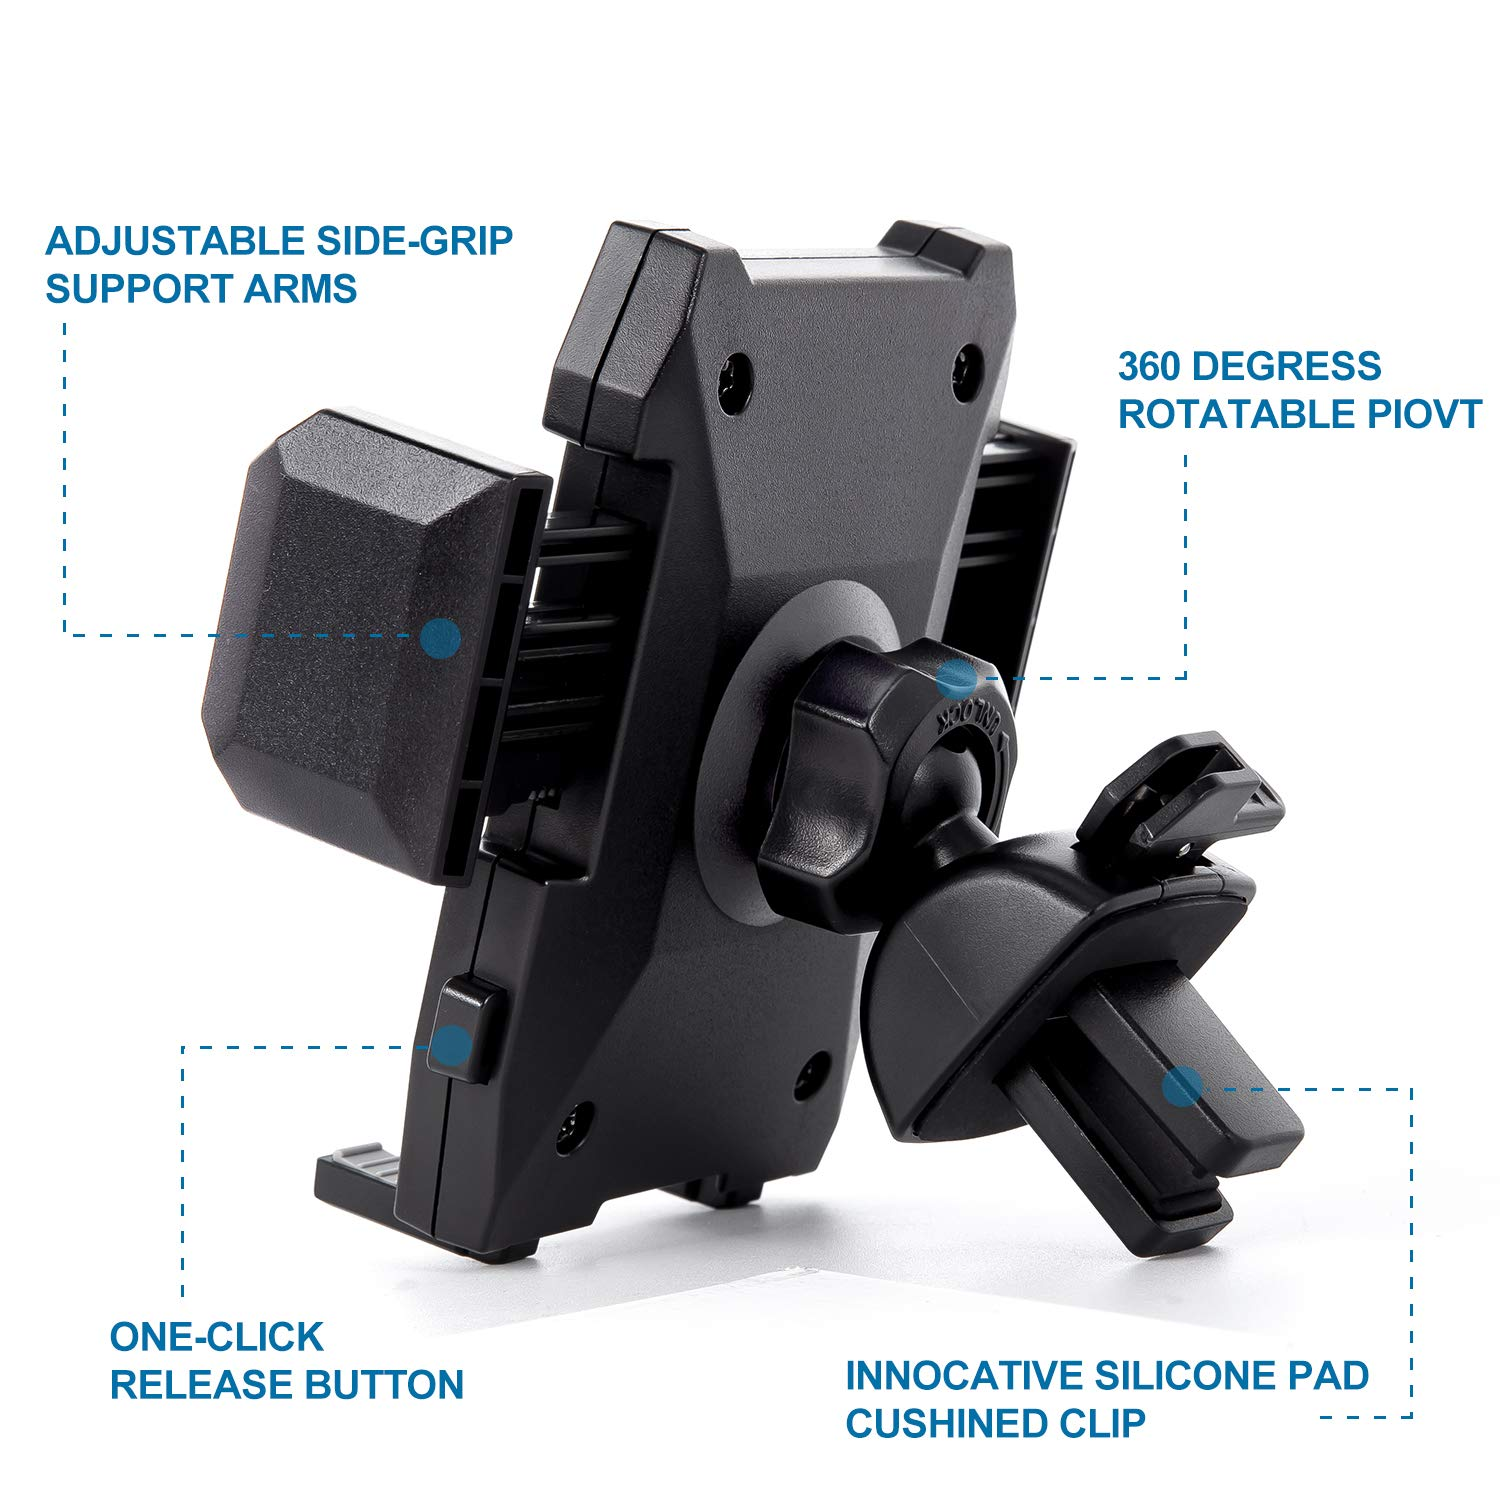 7 7 SE 6s 6 6 5s Samsung Galaxy S10 S9 S8 S7 S6 S5 S4 and More Phone Holder for Car Amoner Car Mount for Cell Phone Air Vent Phone Mount Holder Cradle Compatible with iPhone X XS Max XR X 8 8